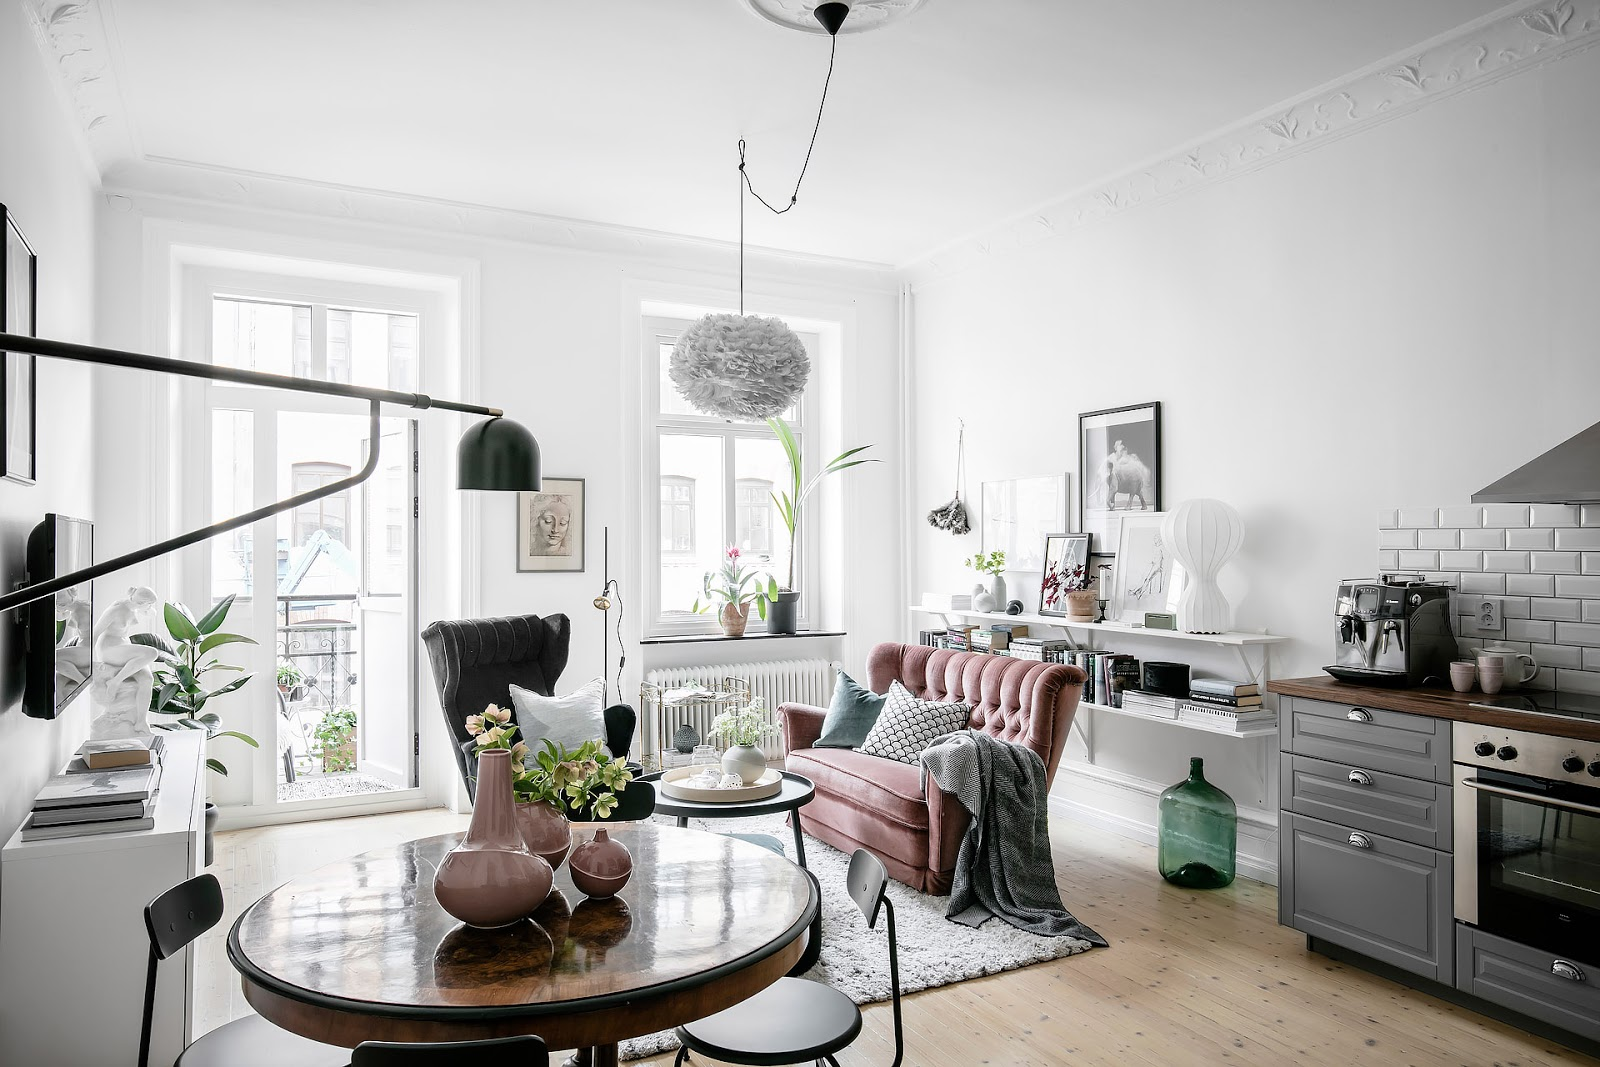 small  scandinavian apartment with pinkaccenta, gray kitchen, white floors